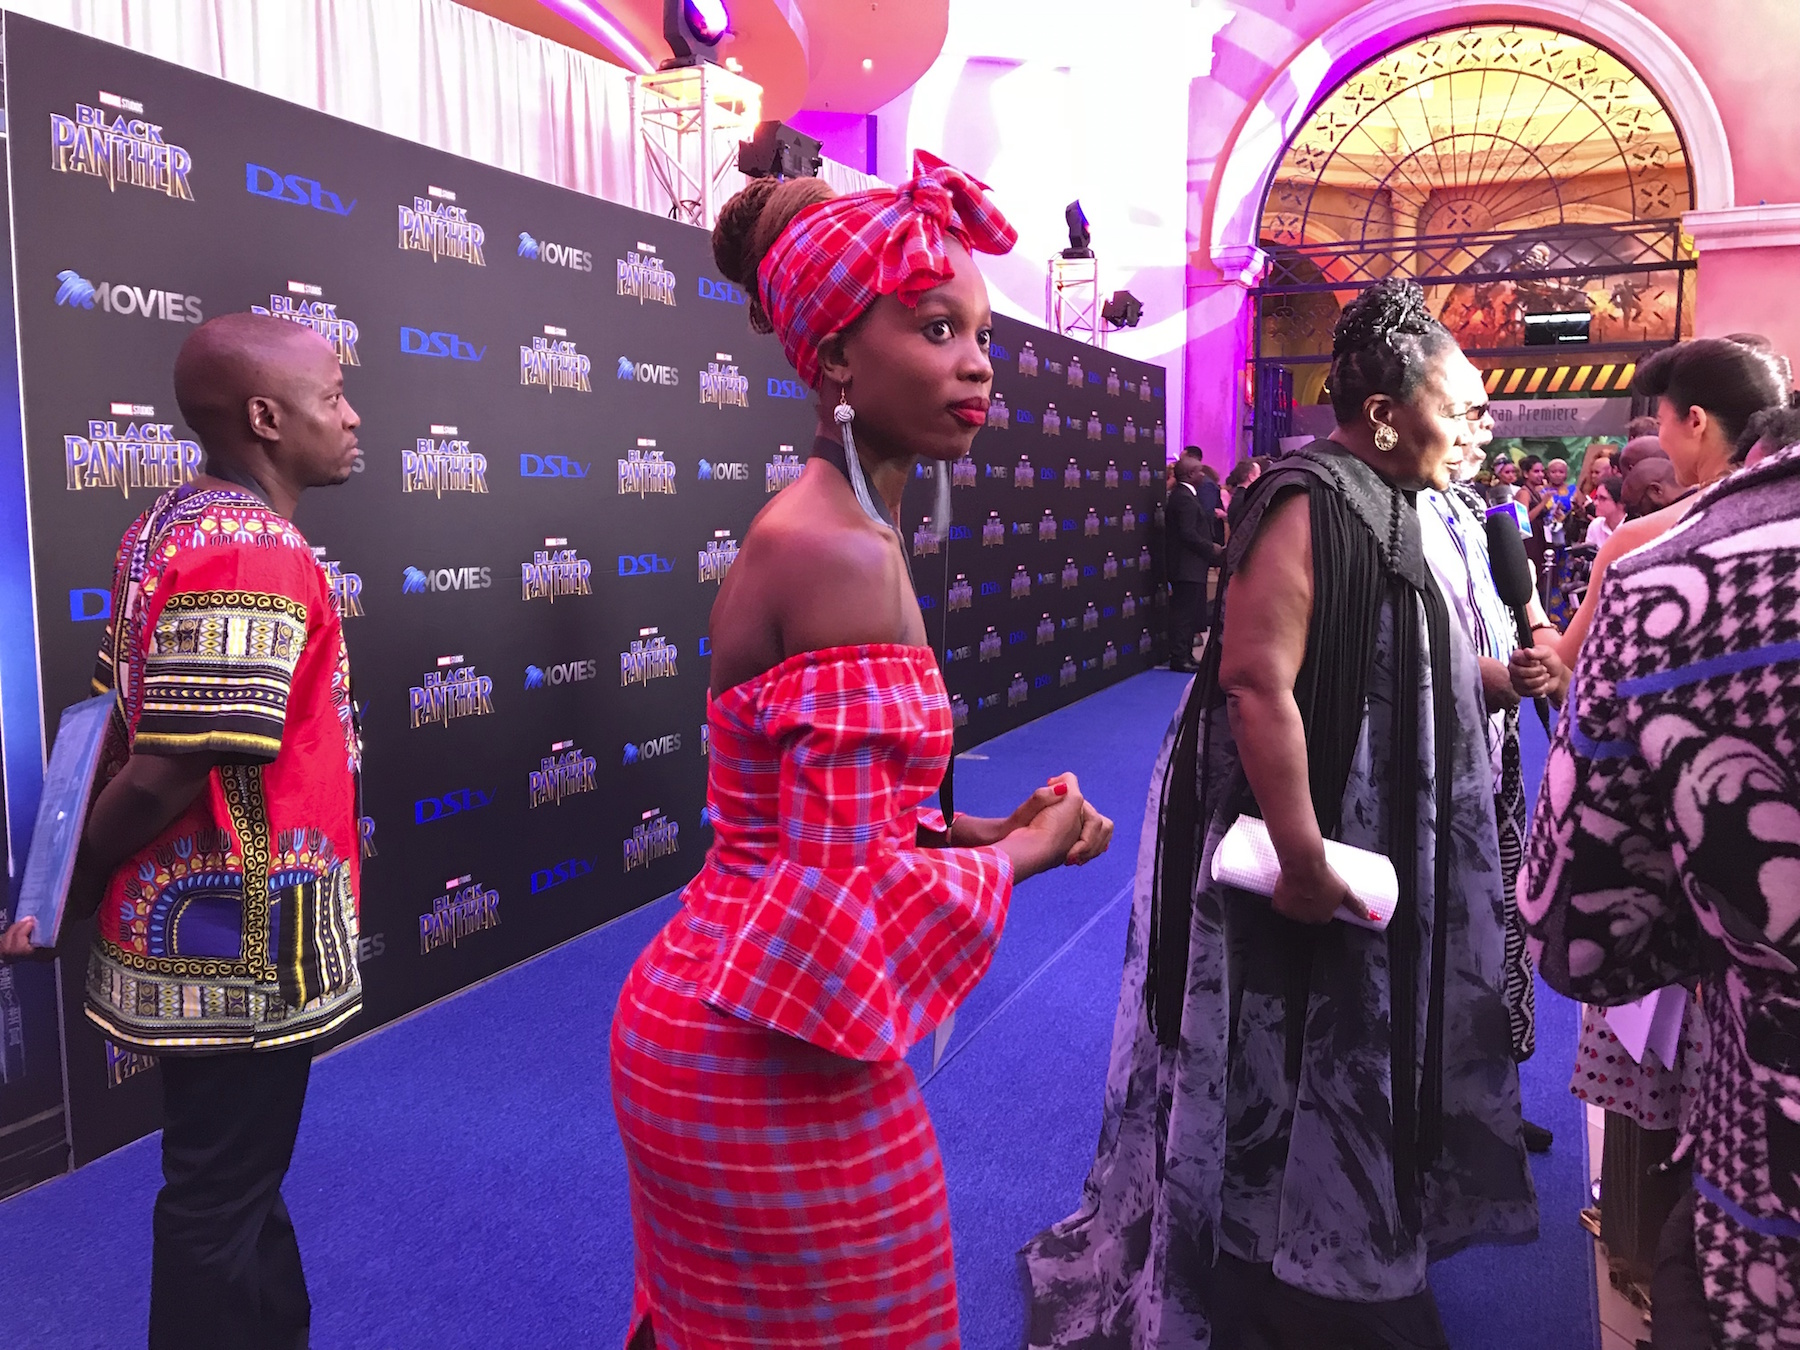 "<div class=""meta image-caption""><div class=""origin-logo origin-image ap""><span>AP</span></div><span class=""caption-text"">The cast of ""Black Panther"" arrive at the South Africa premiere on Friday, Feb. 16, 2018, in Johannesburg. (AP Photo/Cara Anna)</span></div>"